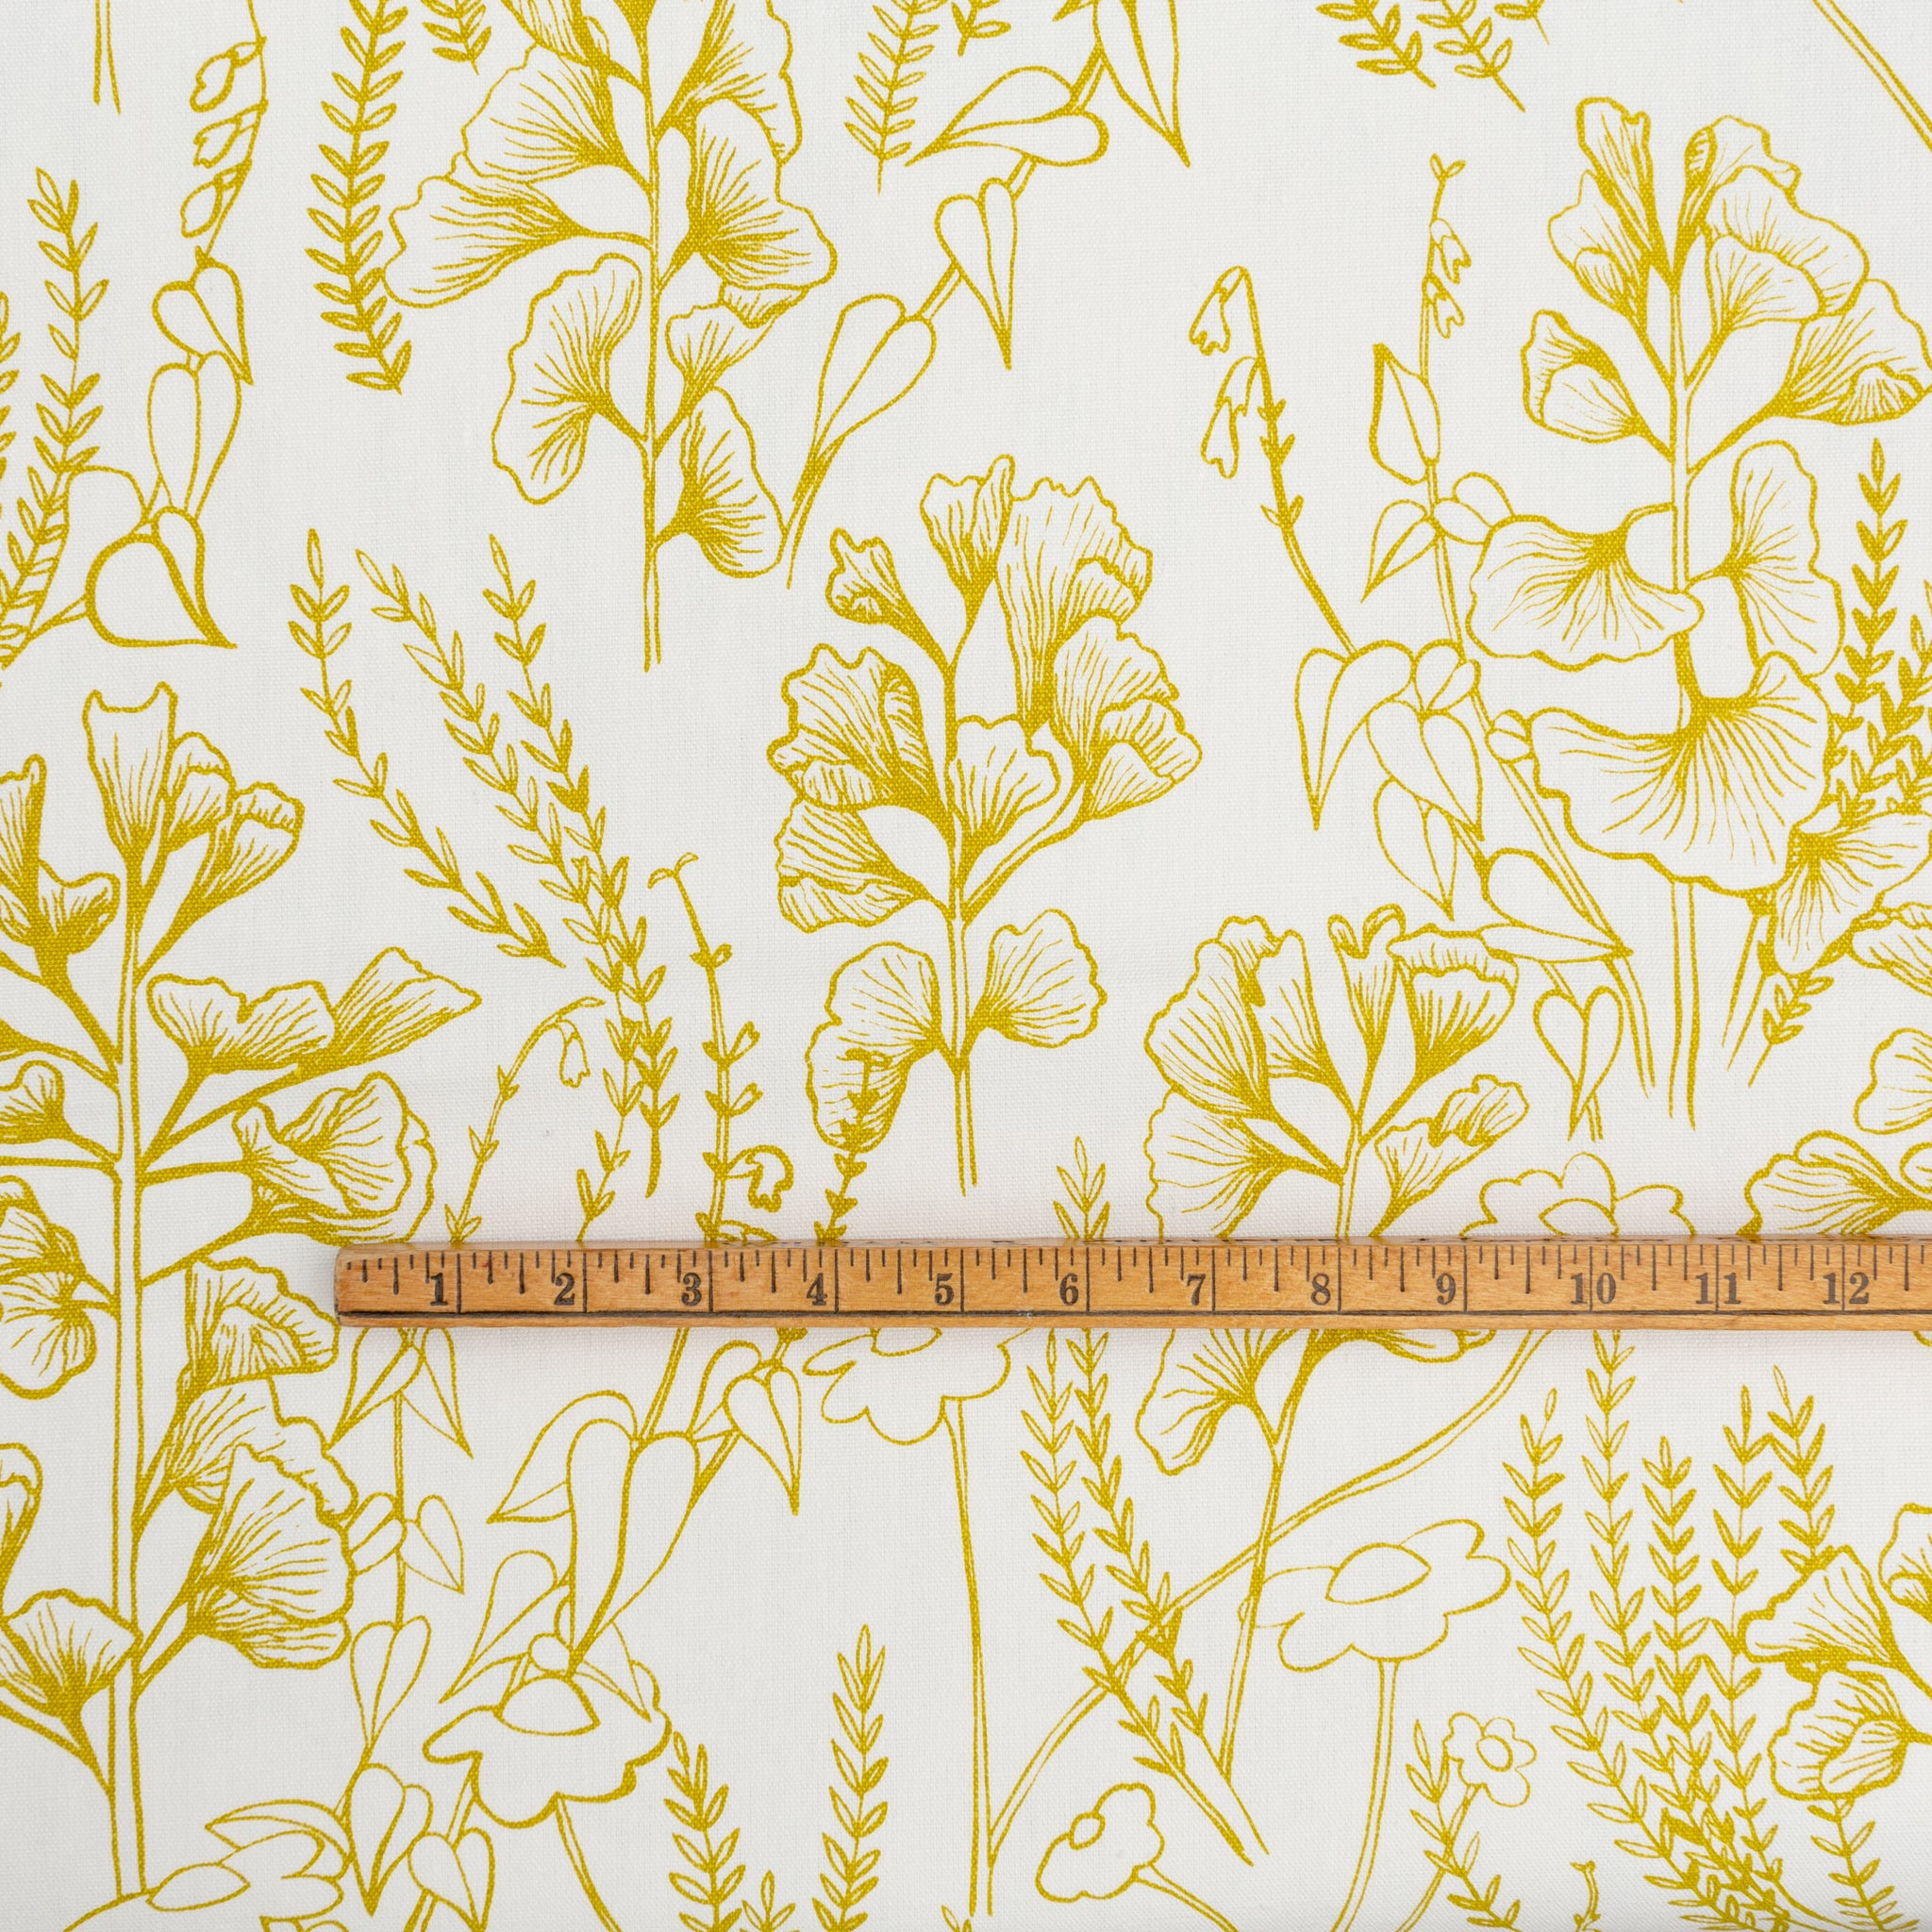 Screen printed fabric yardage with botanical illustrations and yardstick for scale